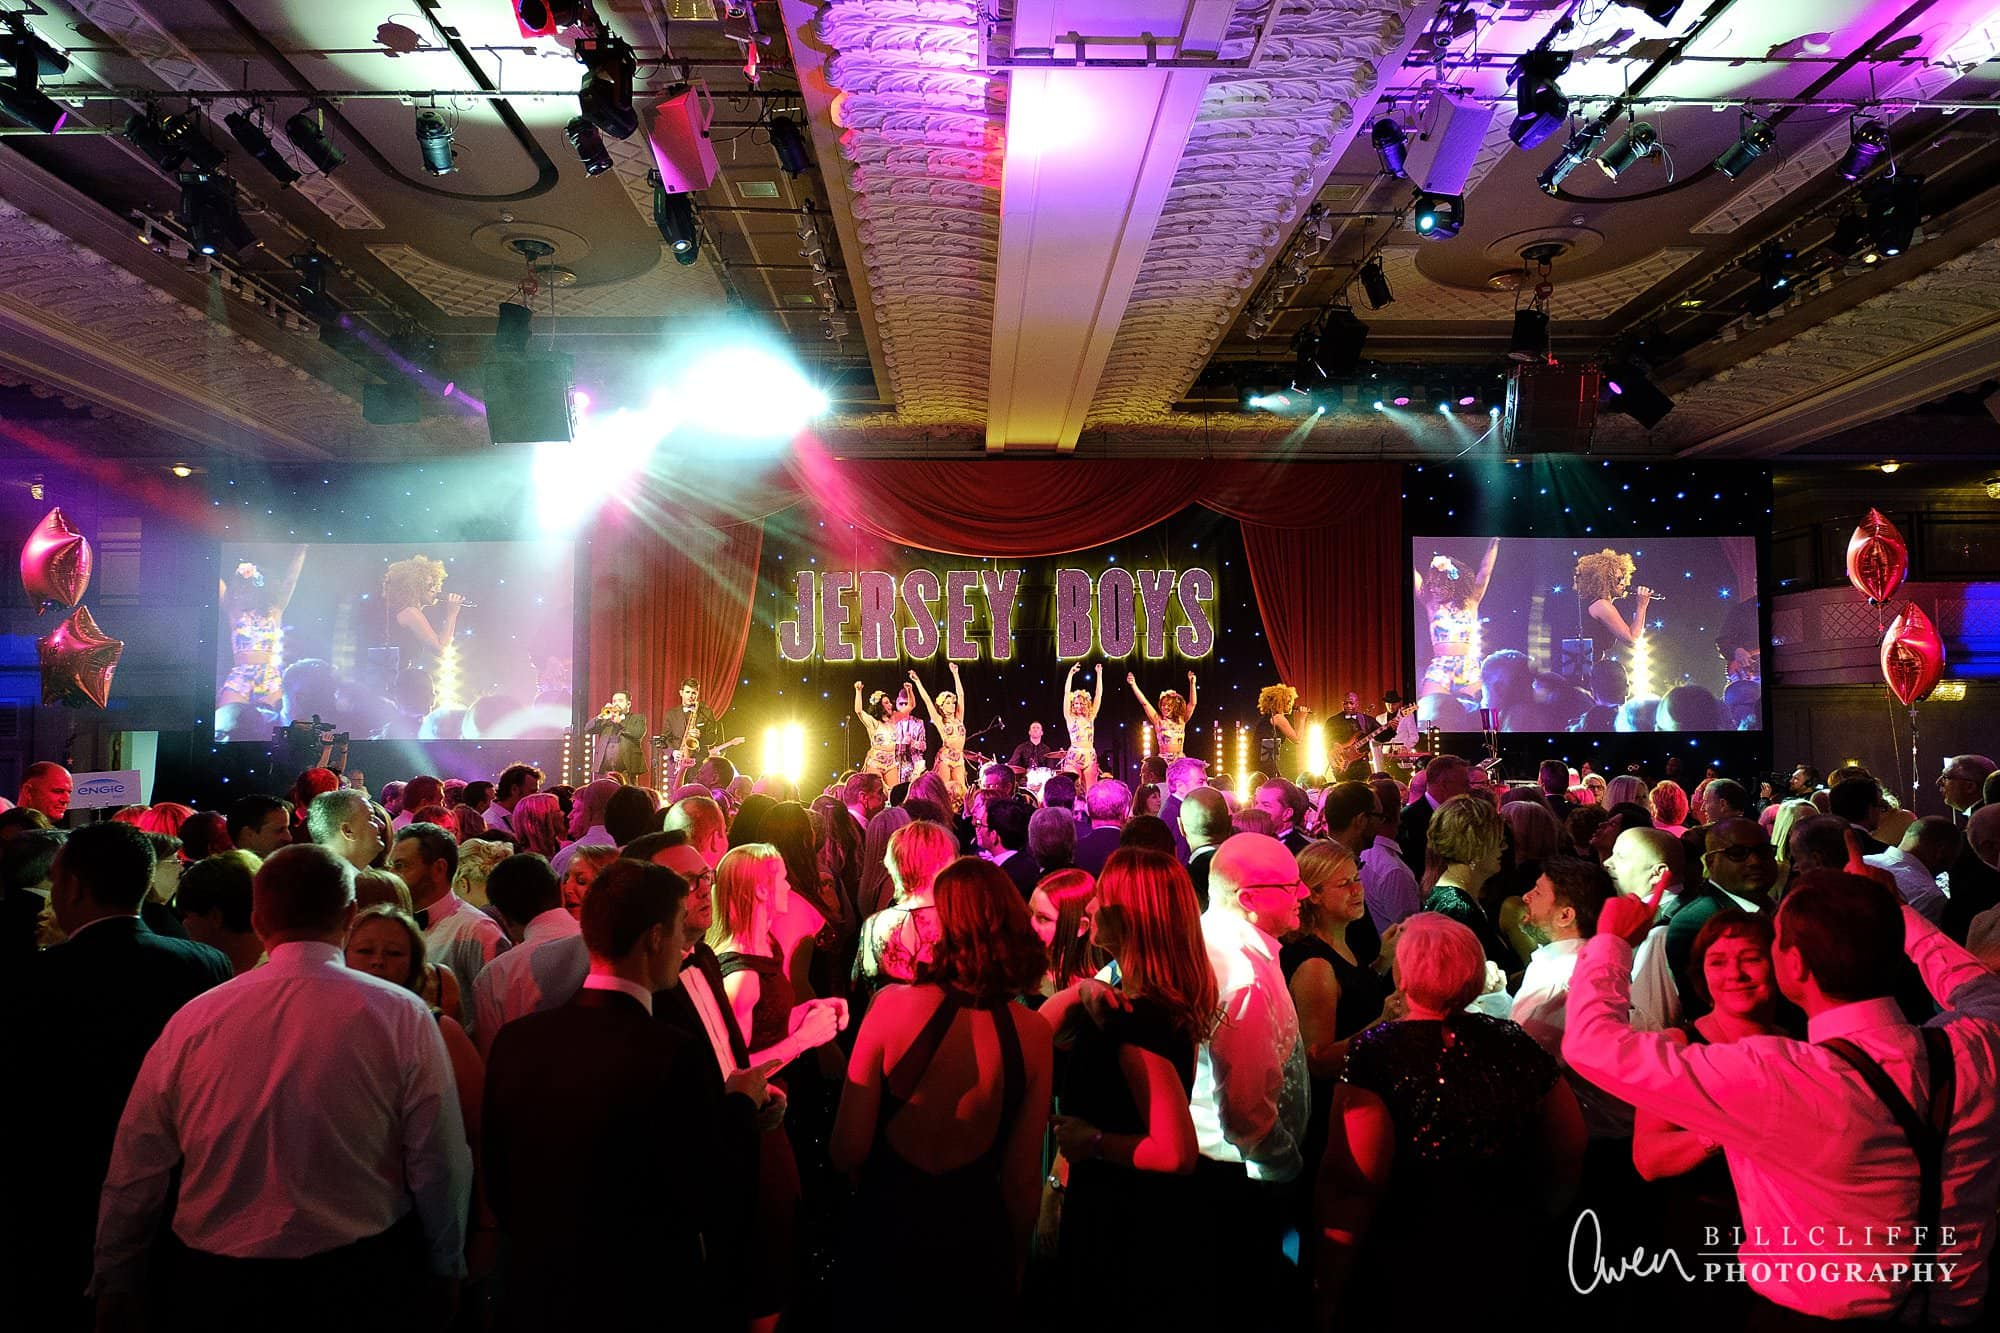 london event photographer park lane pb 028 - A Luxury Ball at Grosvenor House Park Lane